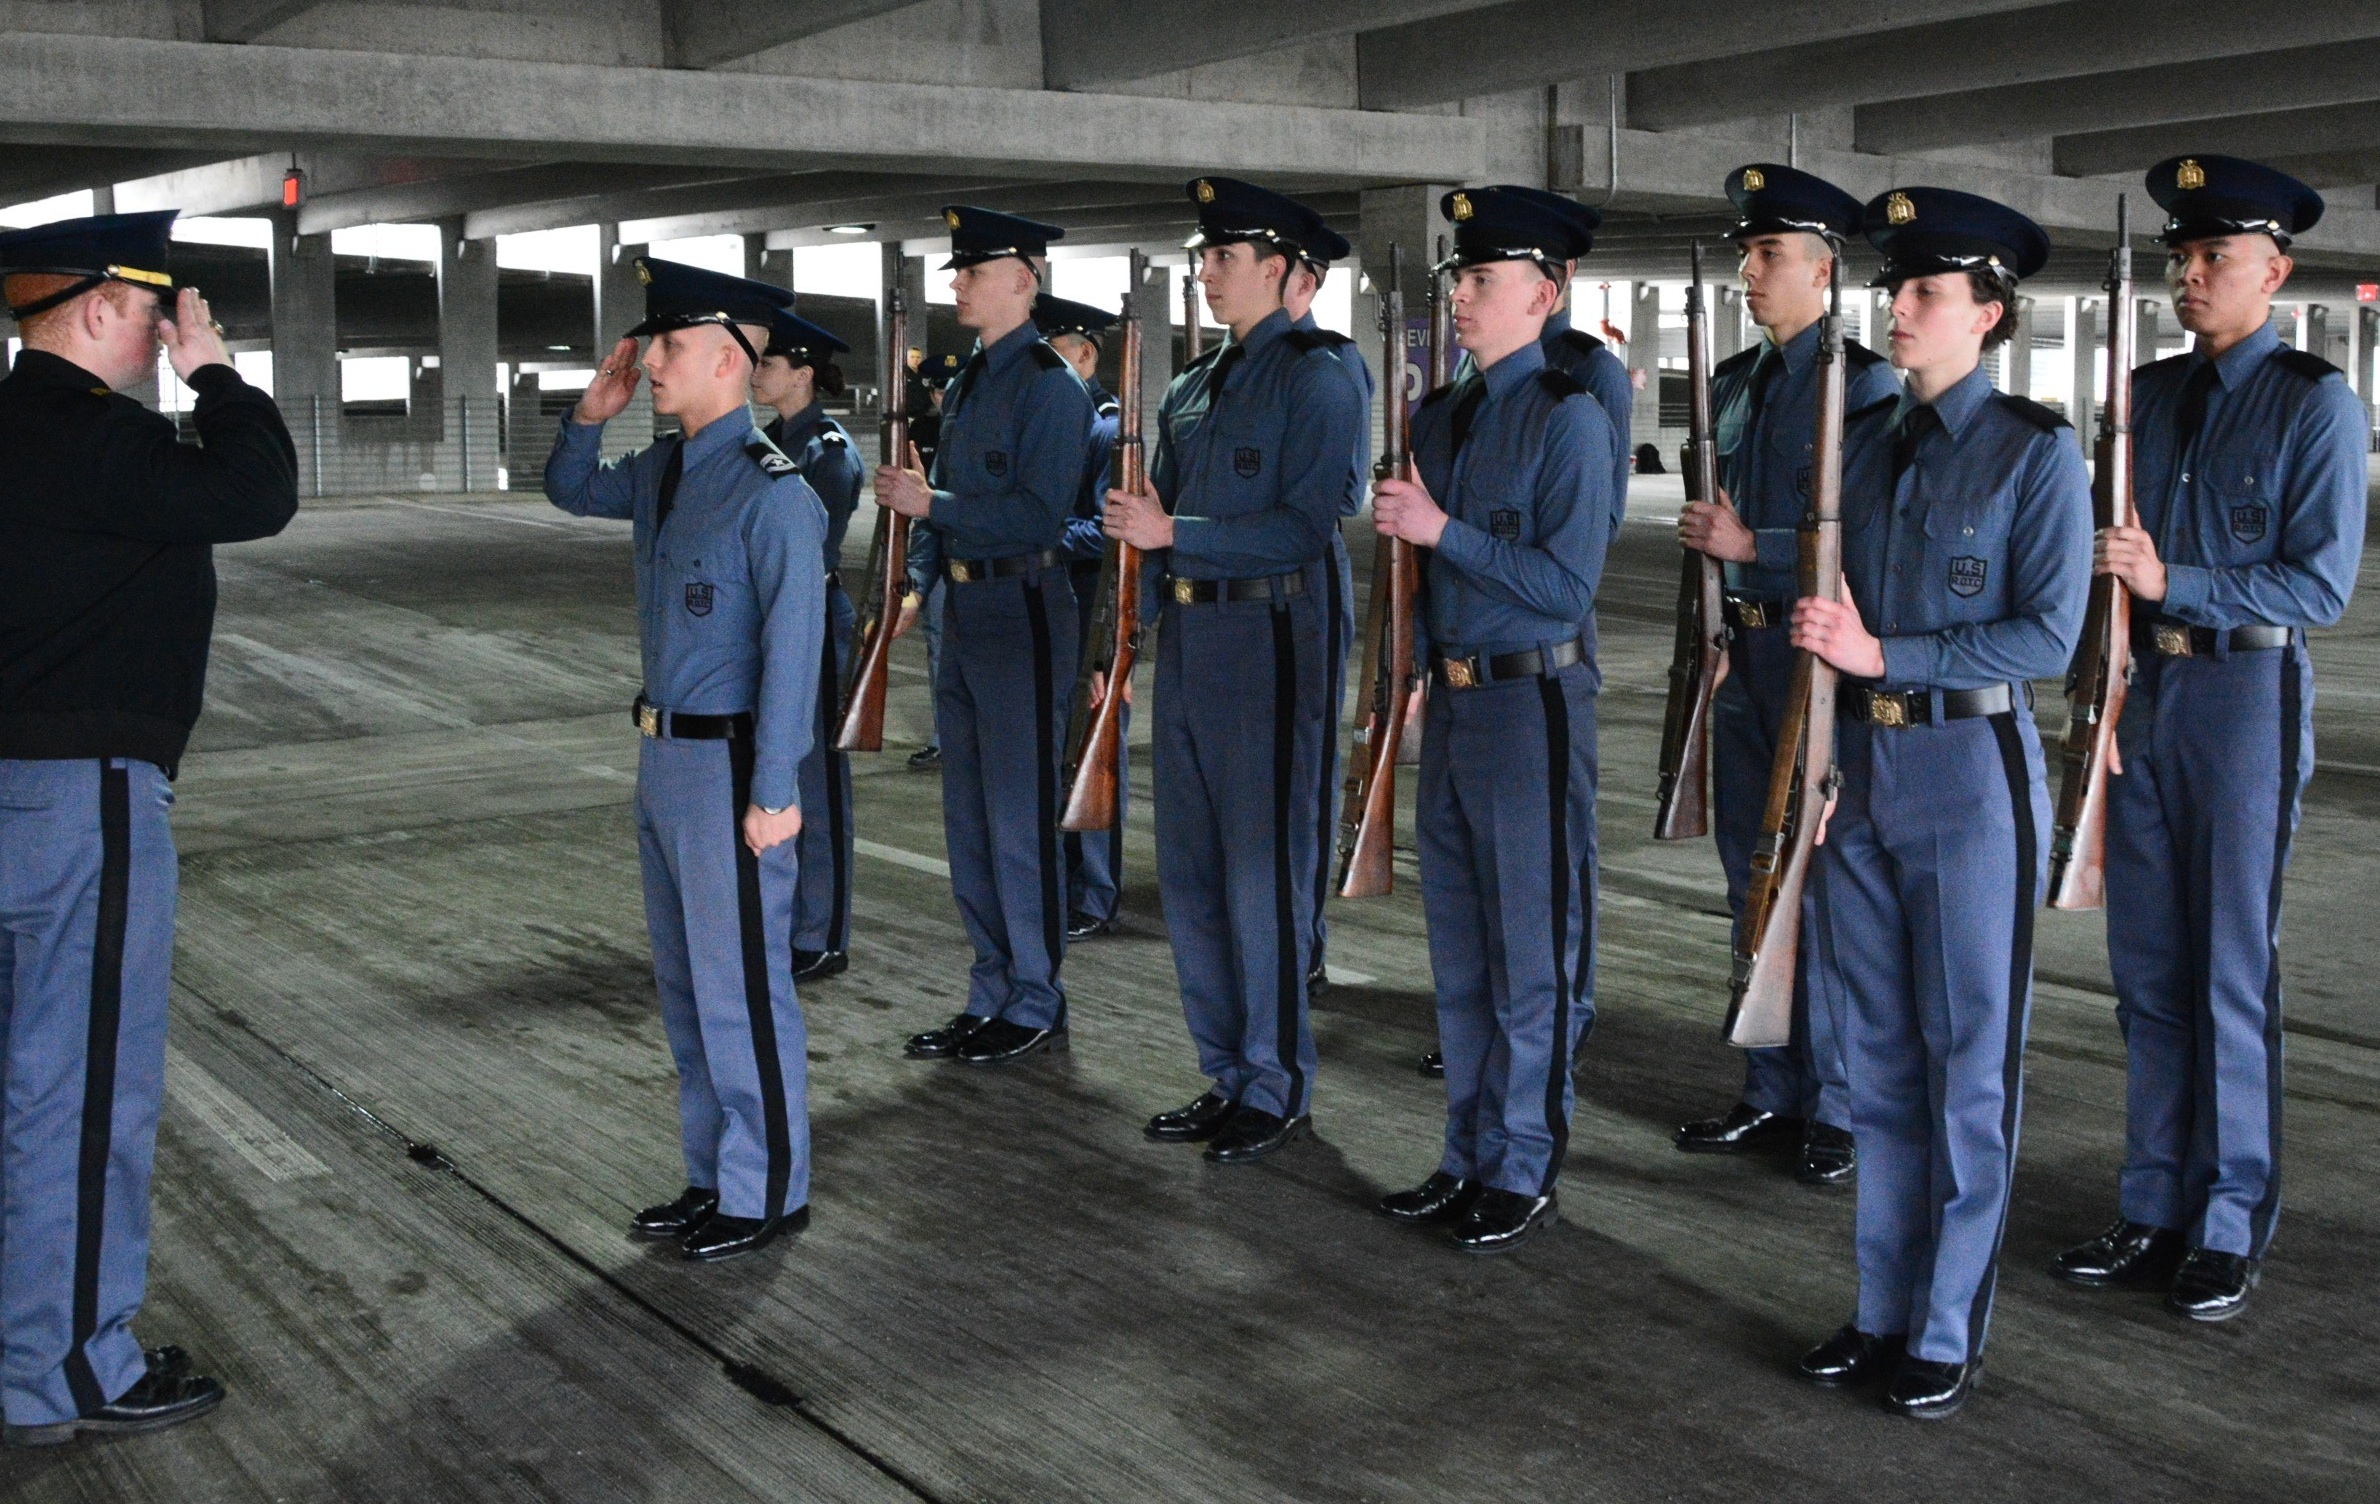 A cadet squad reports in as part of the Jaffe Eager Squad drill competition in the Turner Street parking garage.